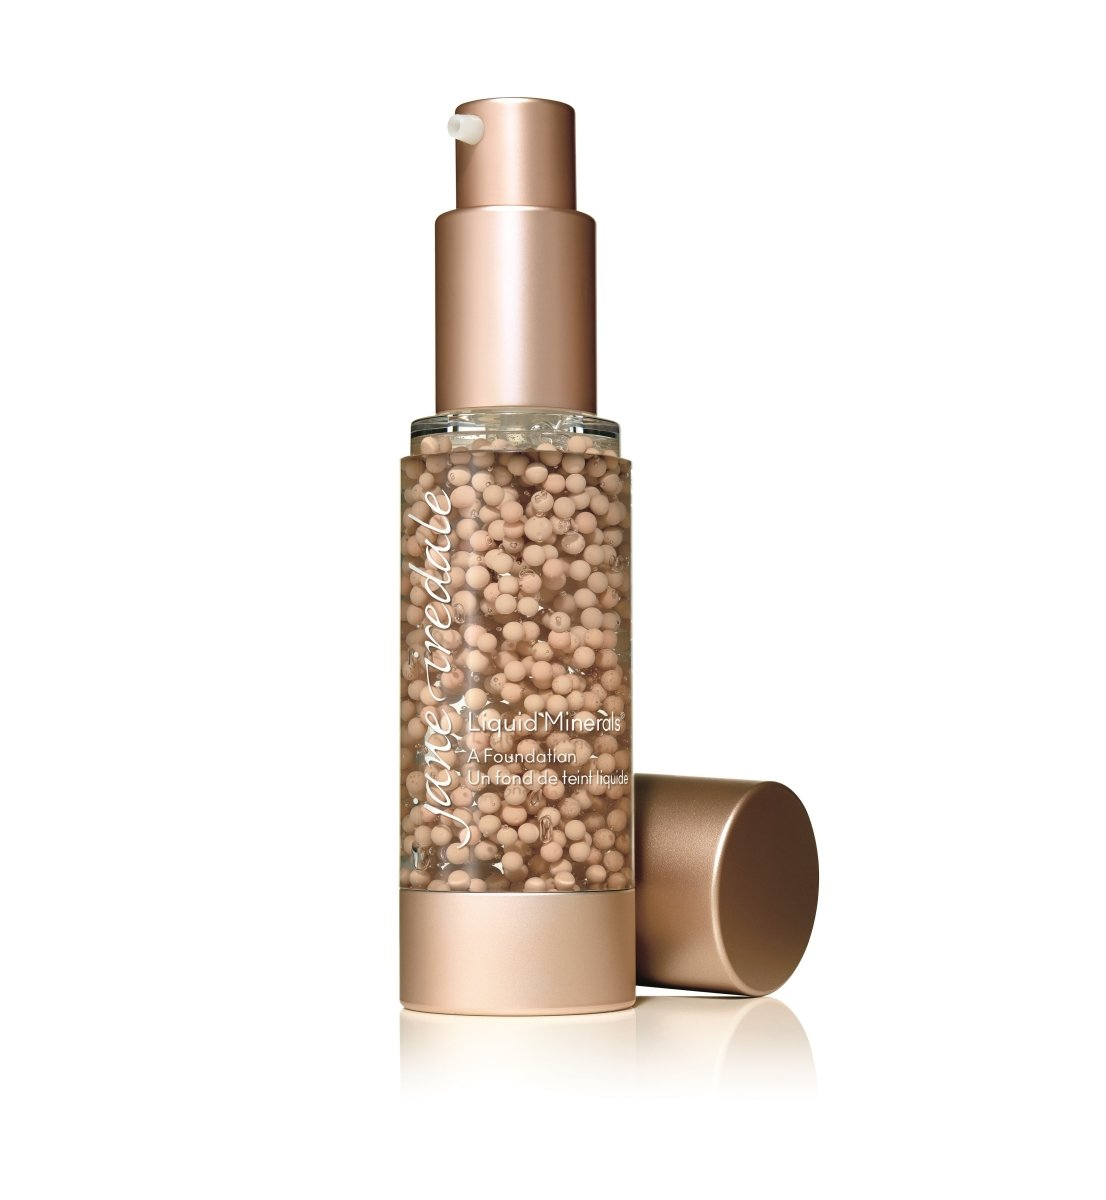 JANE IREDALE Liquid Minerals™ A Foundation 礦物質潤澤慕斯 [30ml] - MINT Organics